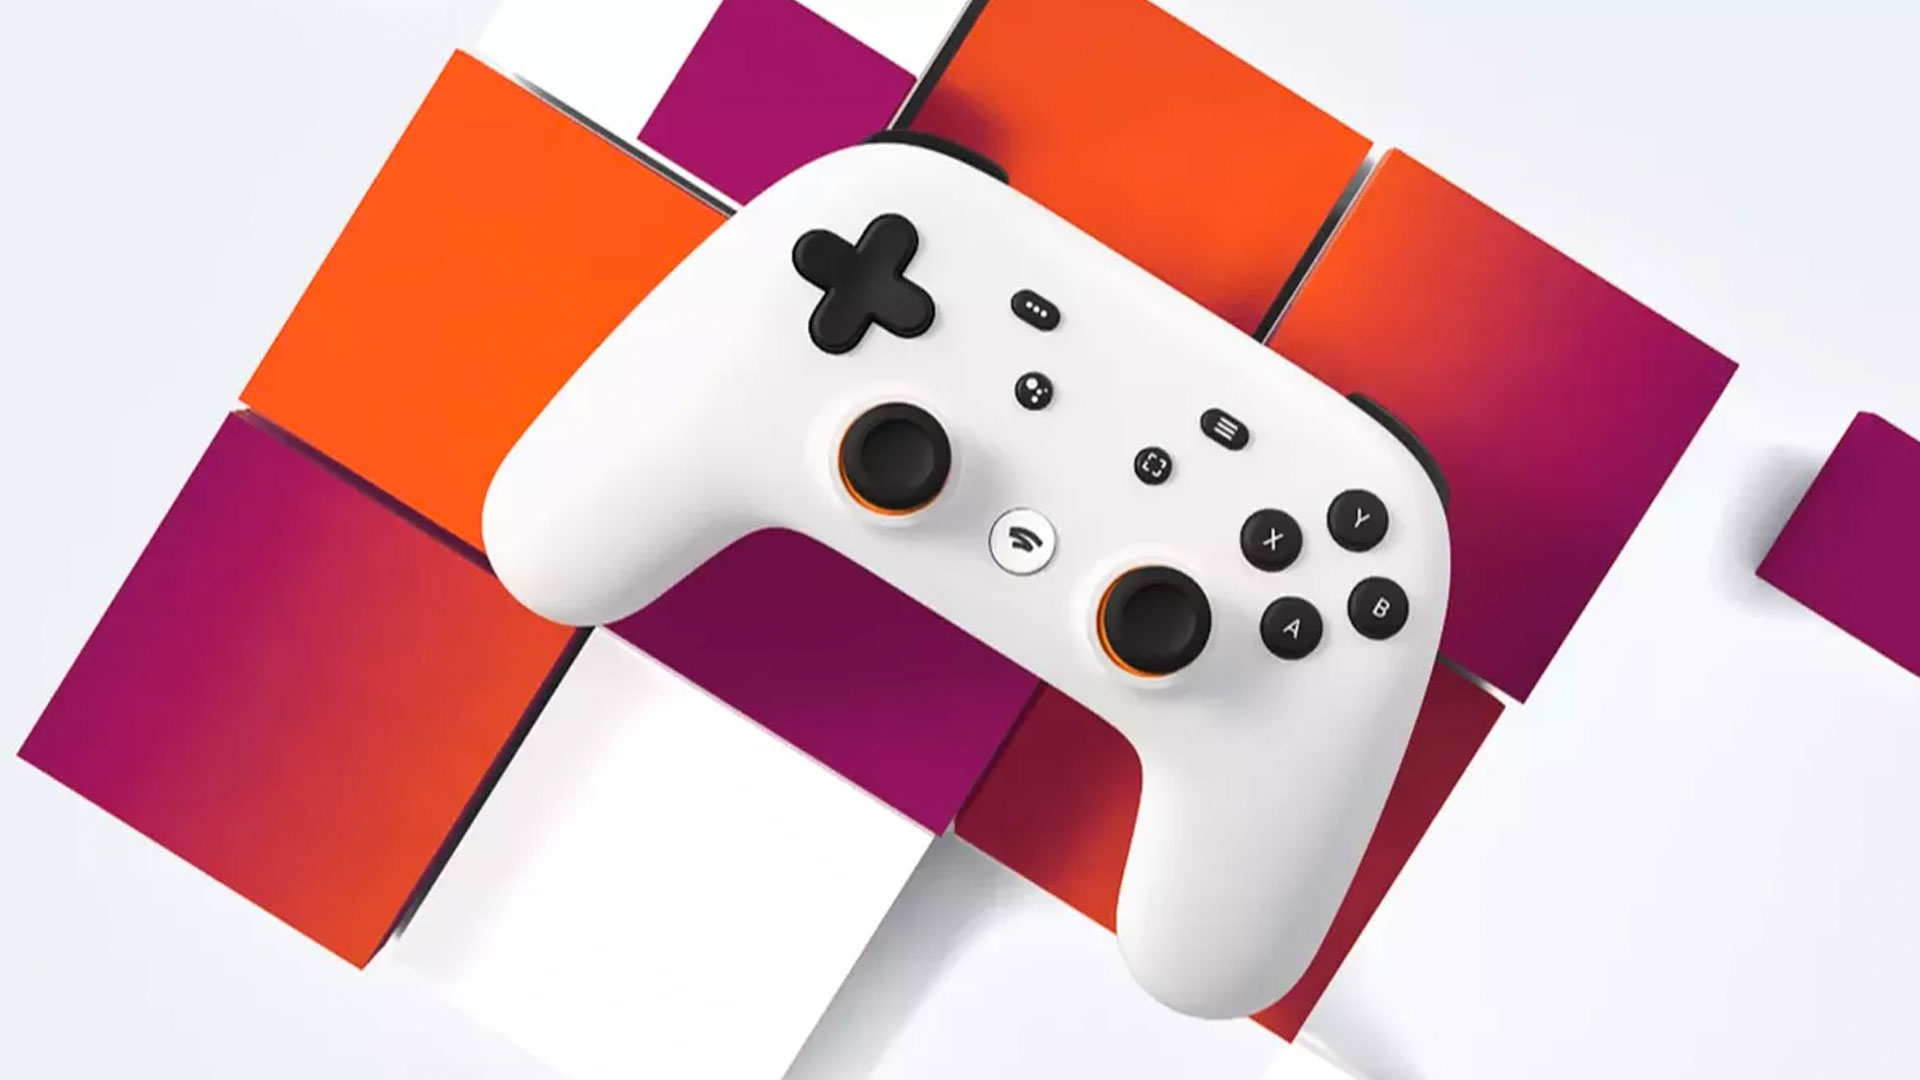 Tech-Gift-Guide-Google-Stadia-controller-in-front-of-multicolored-geometric-background.jpg